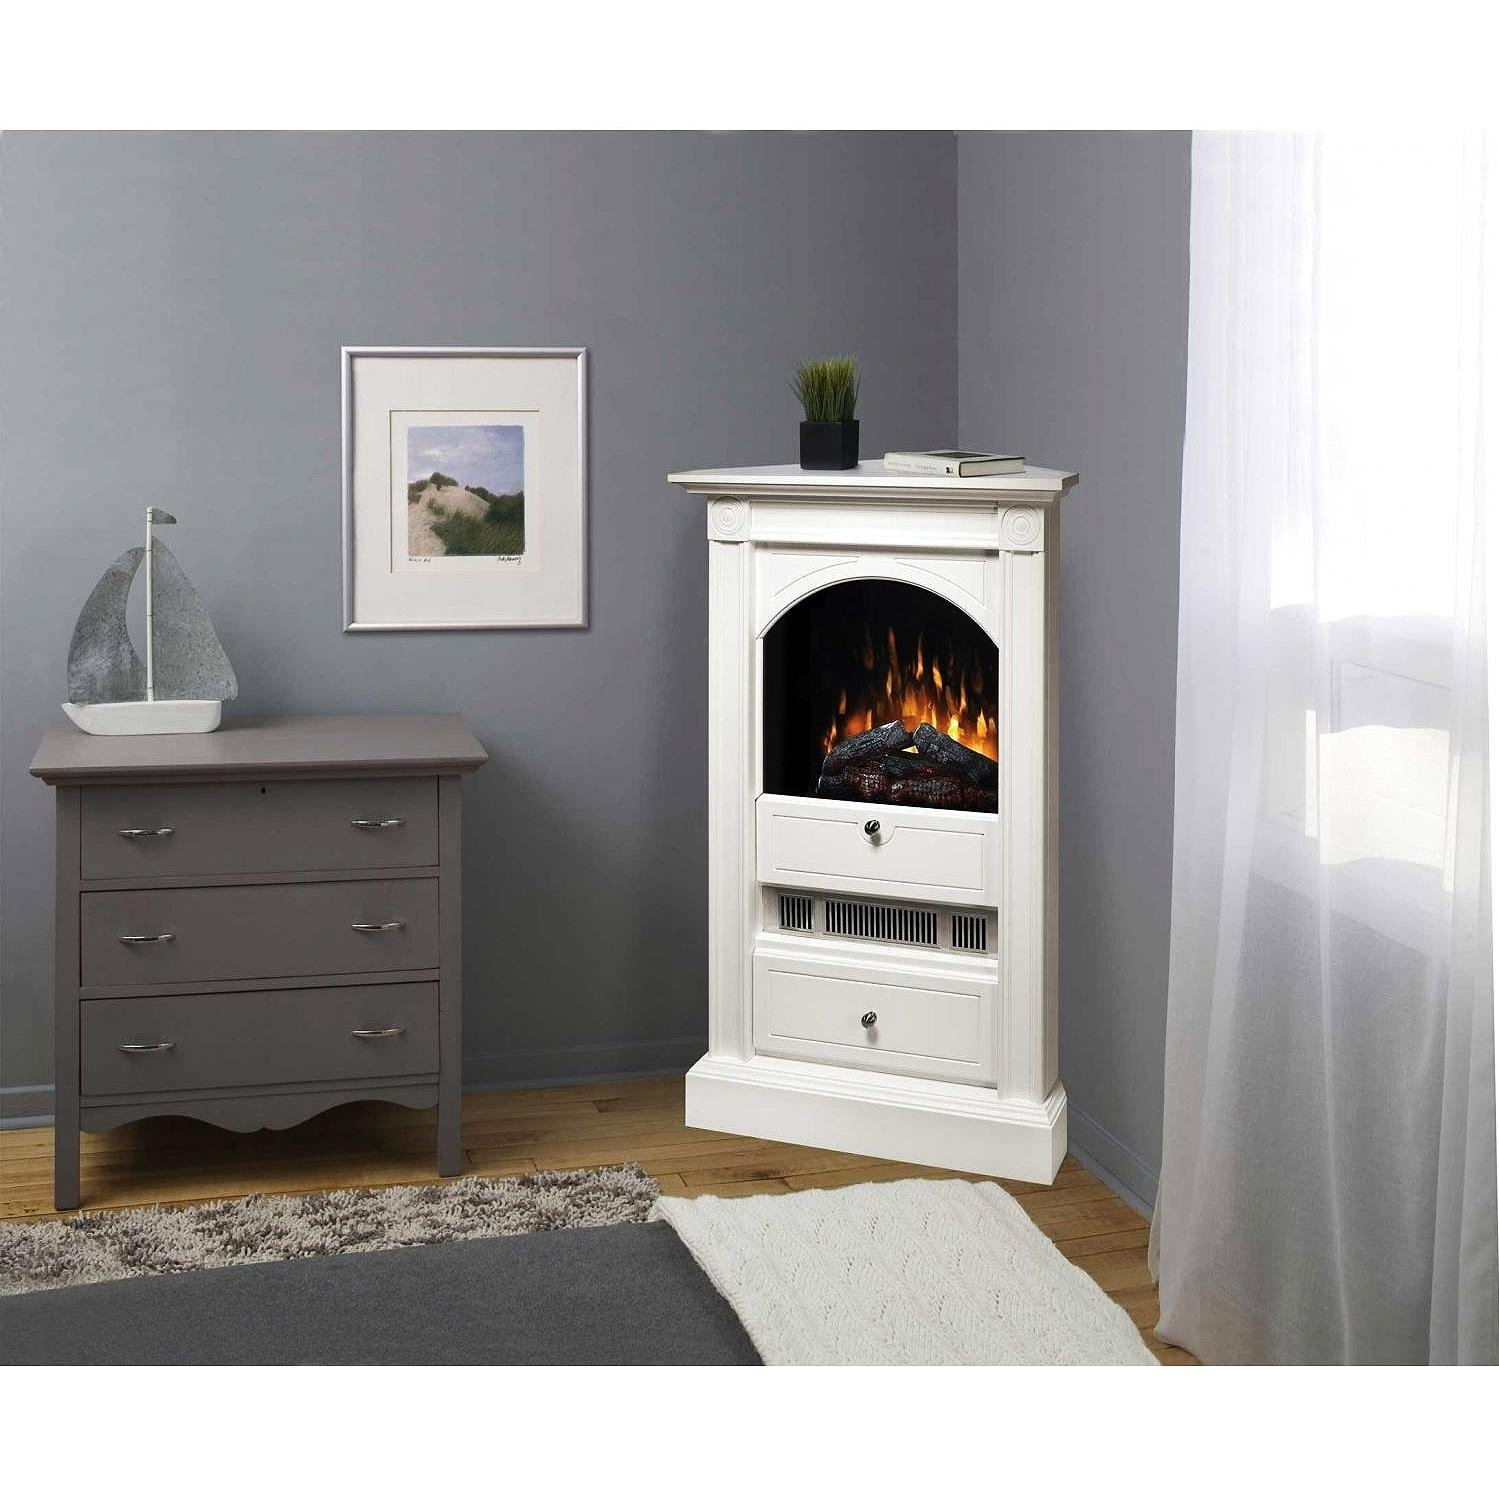 Dimplex Dcf7850w 30 Inch Chelsea Corner Electric Fireplace